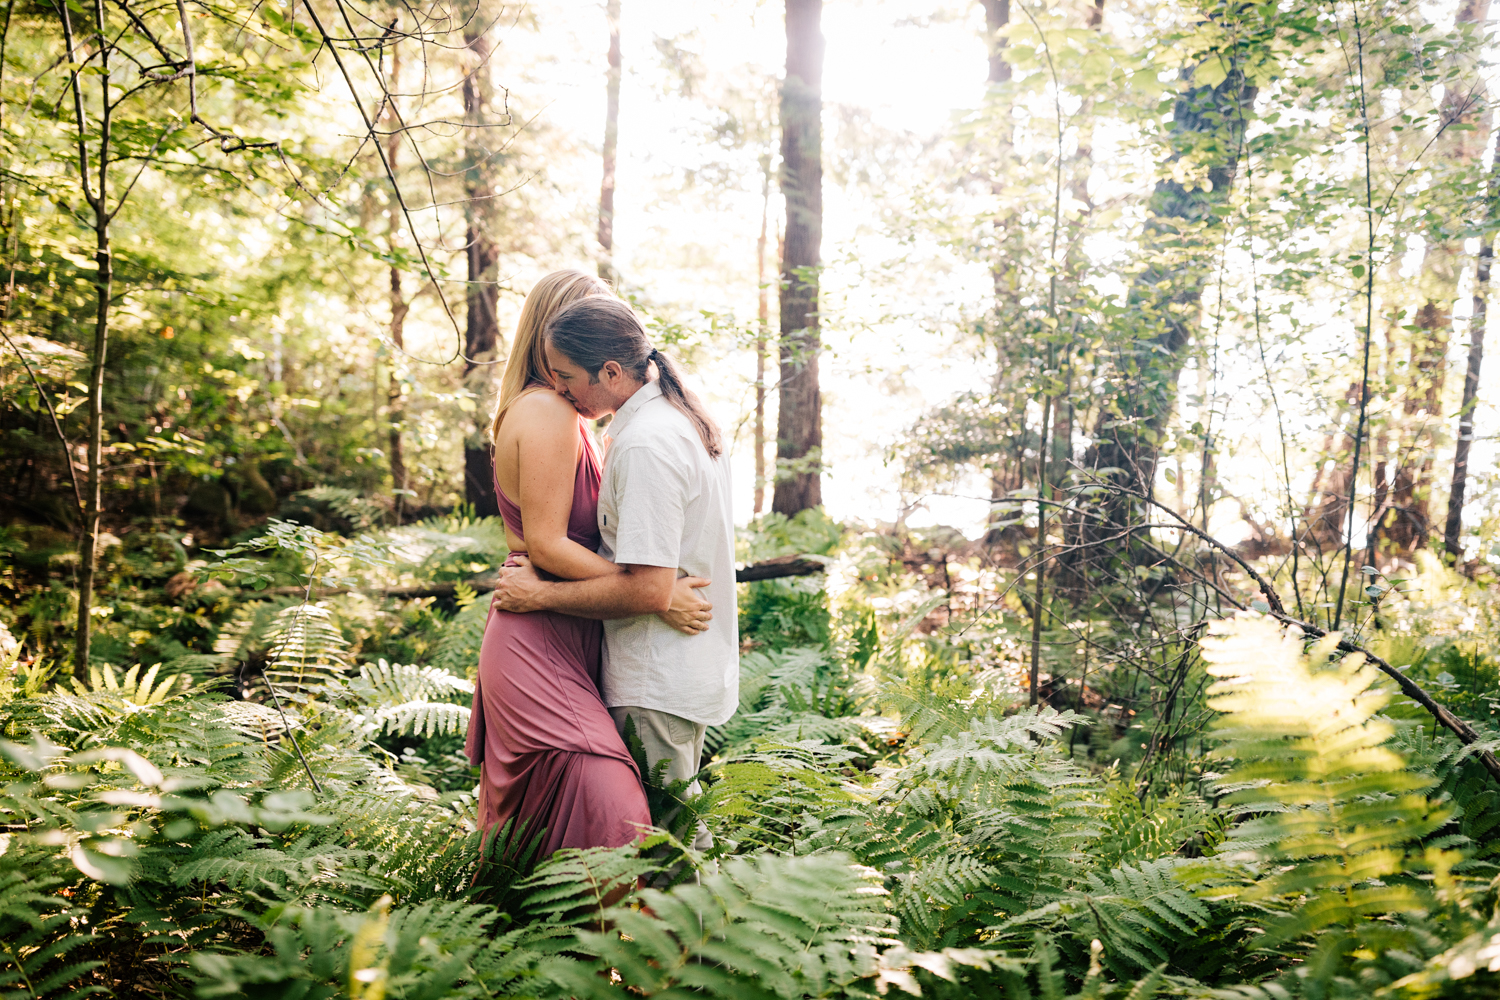 fun-photographer-dublin-new-hampshire-woodsy-engagement-andrea-van-orsouw-photography-adventure-natural.jpg